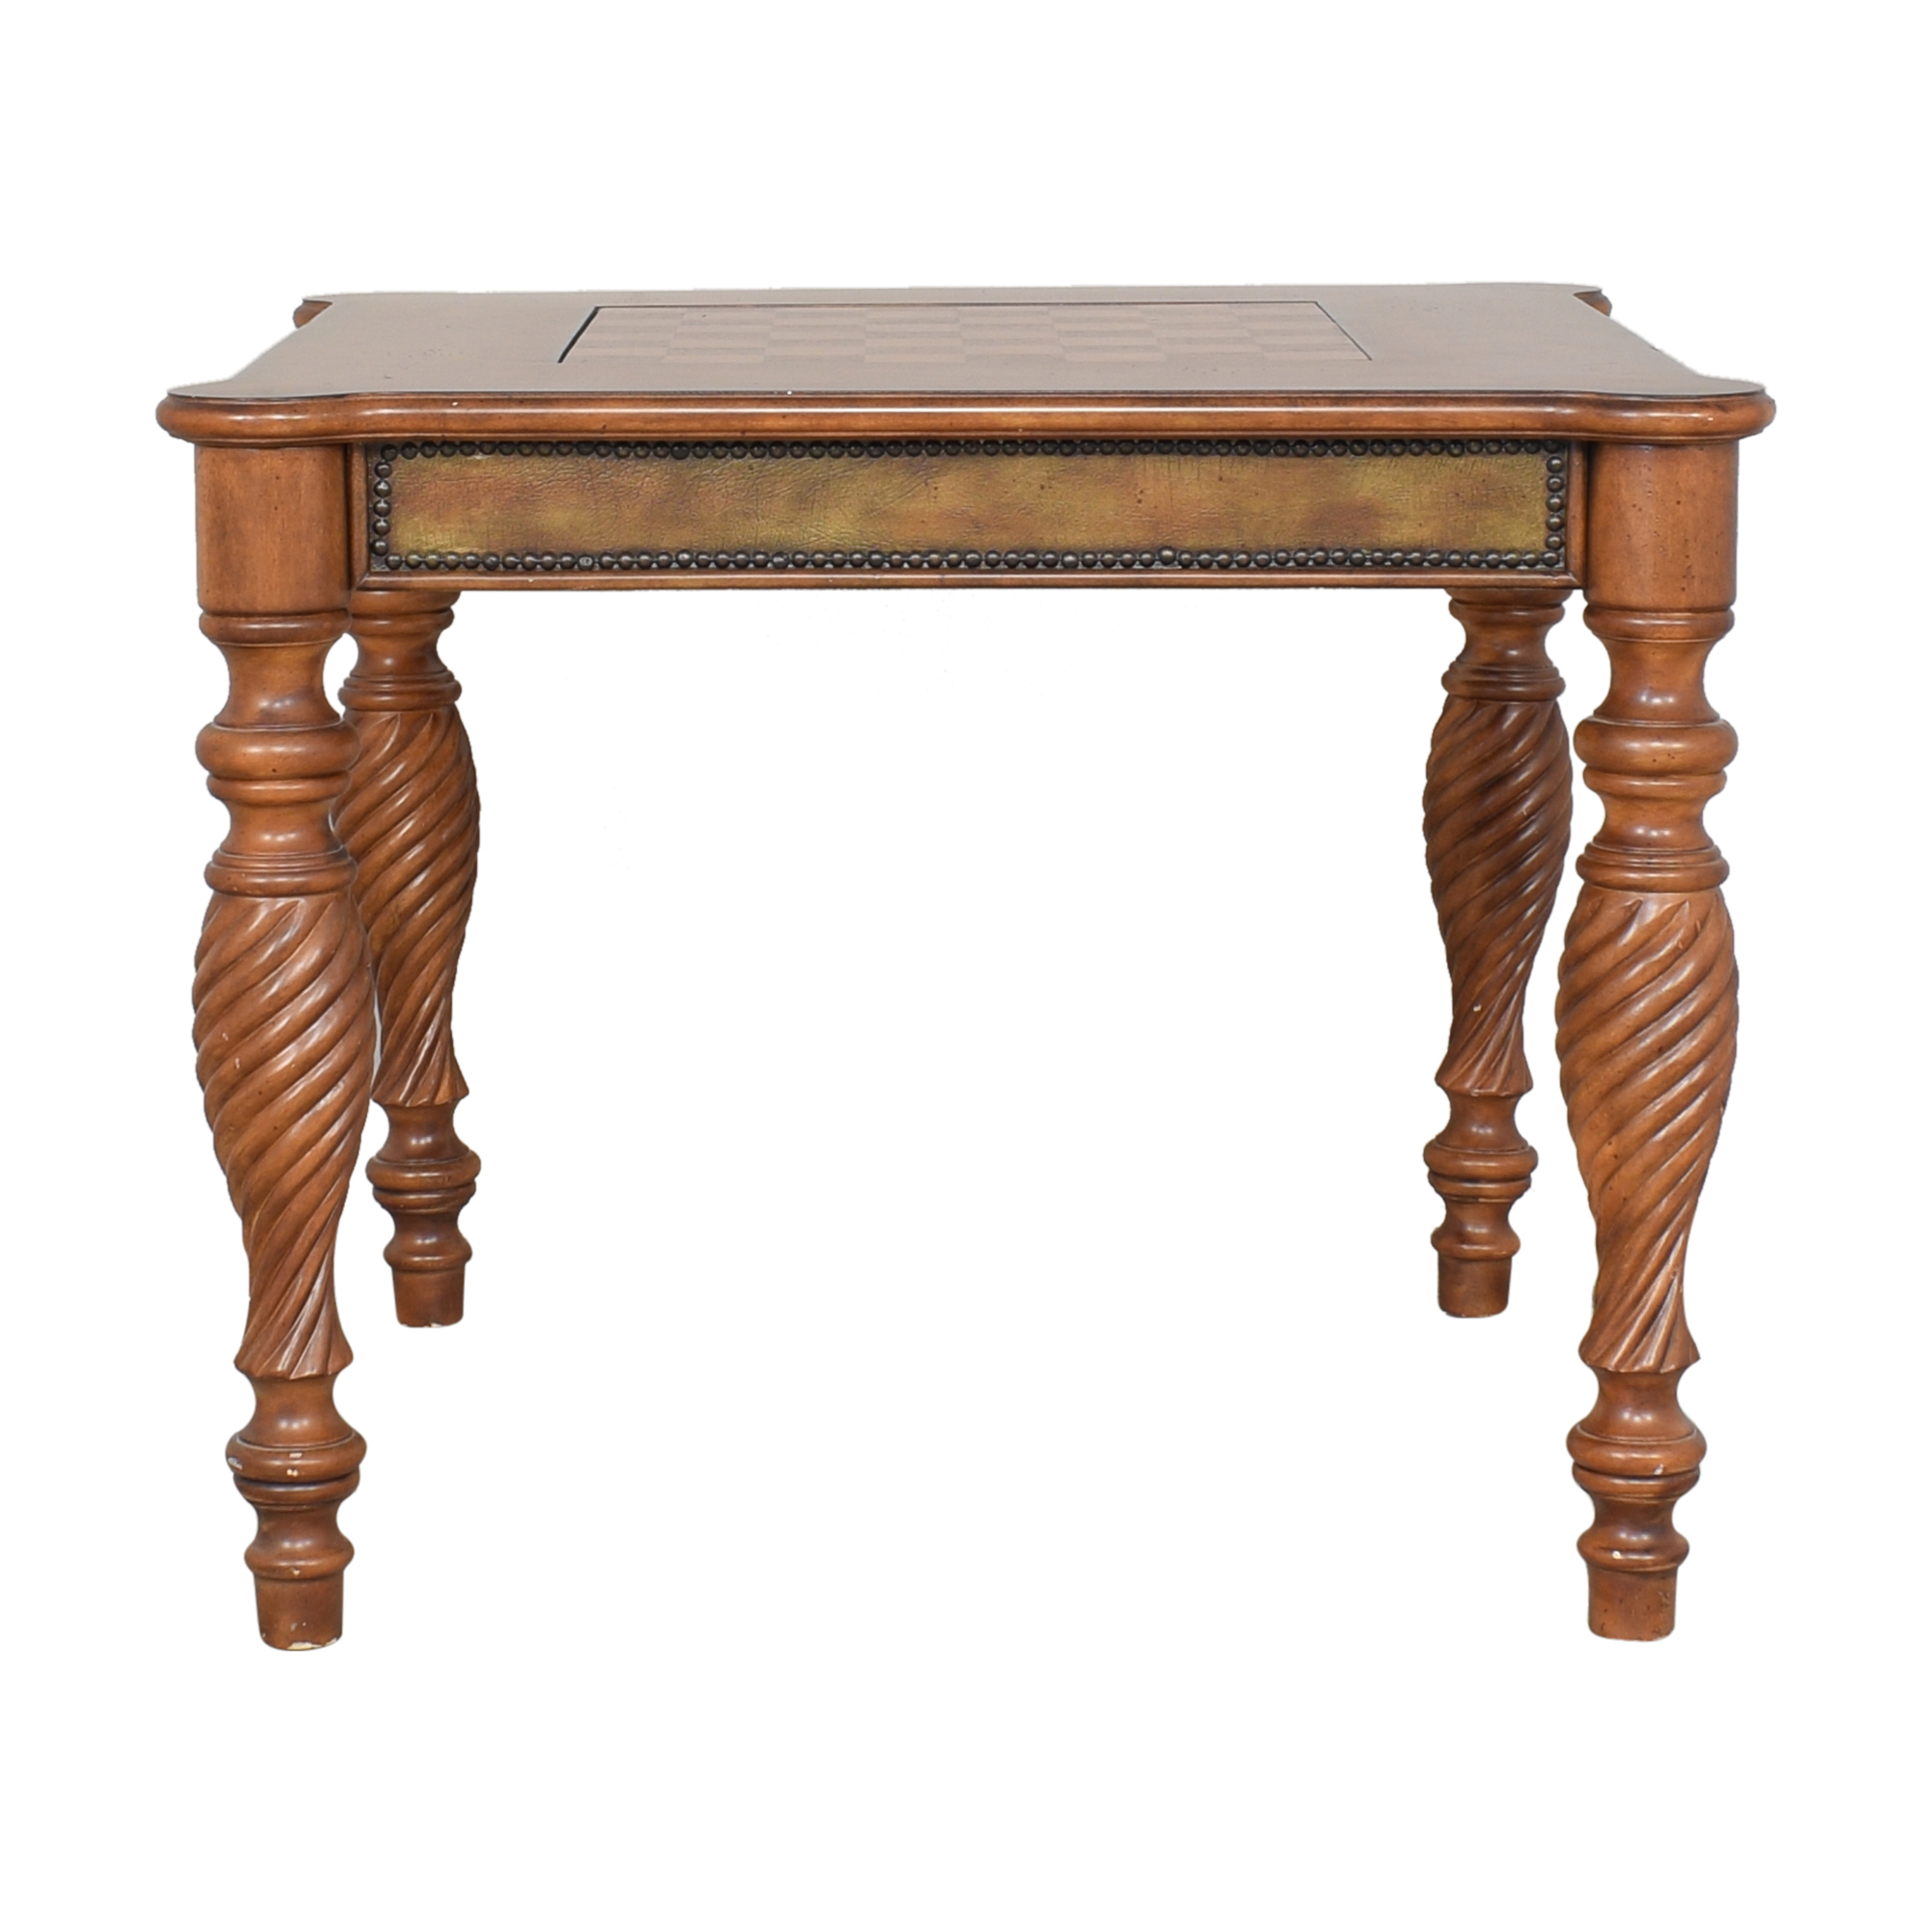 Hooker Furniture Hooker Furniture Game Table brown